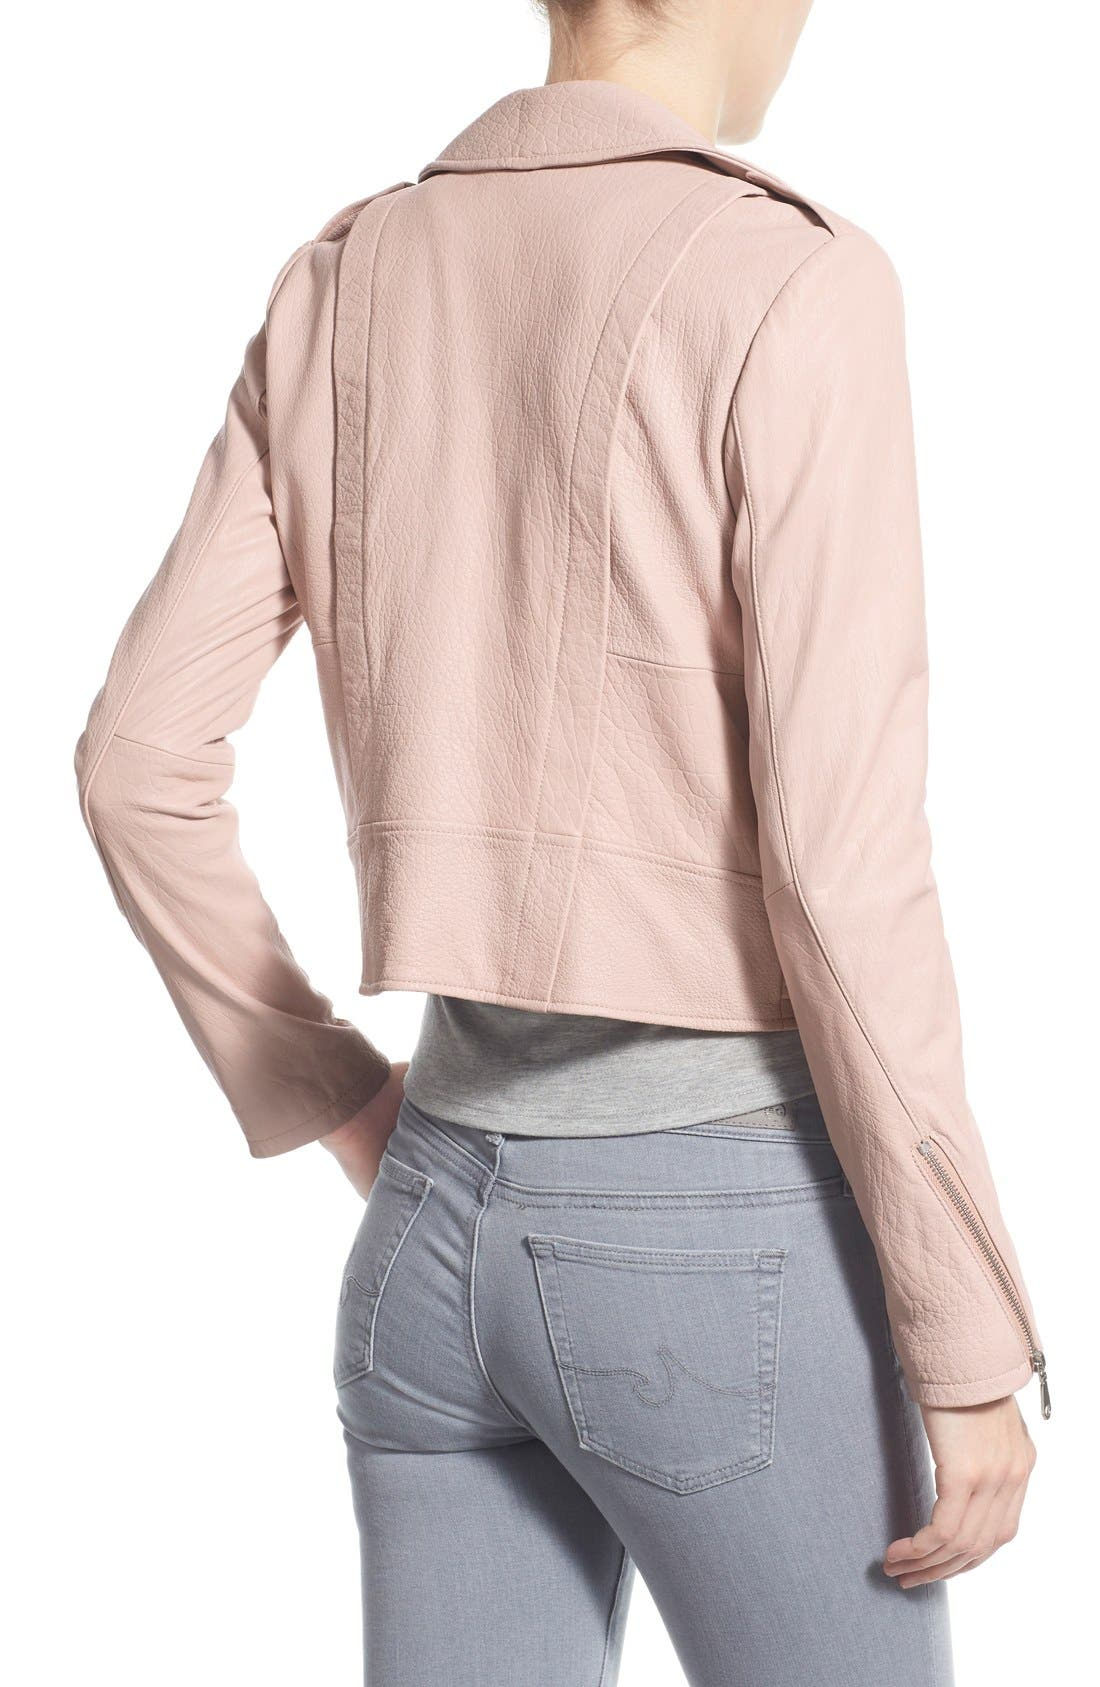 Pebble Leather Jacket,                             Alternate thumbnail 2, color,                             Nude Pink